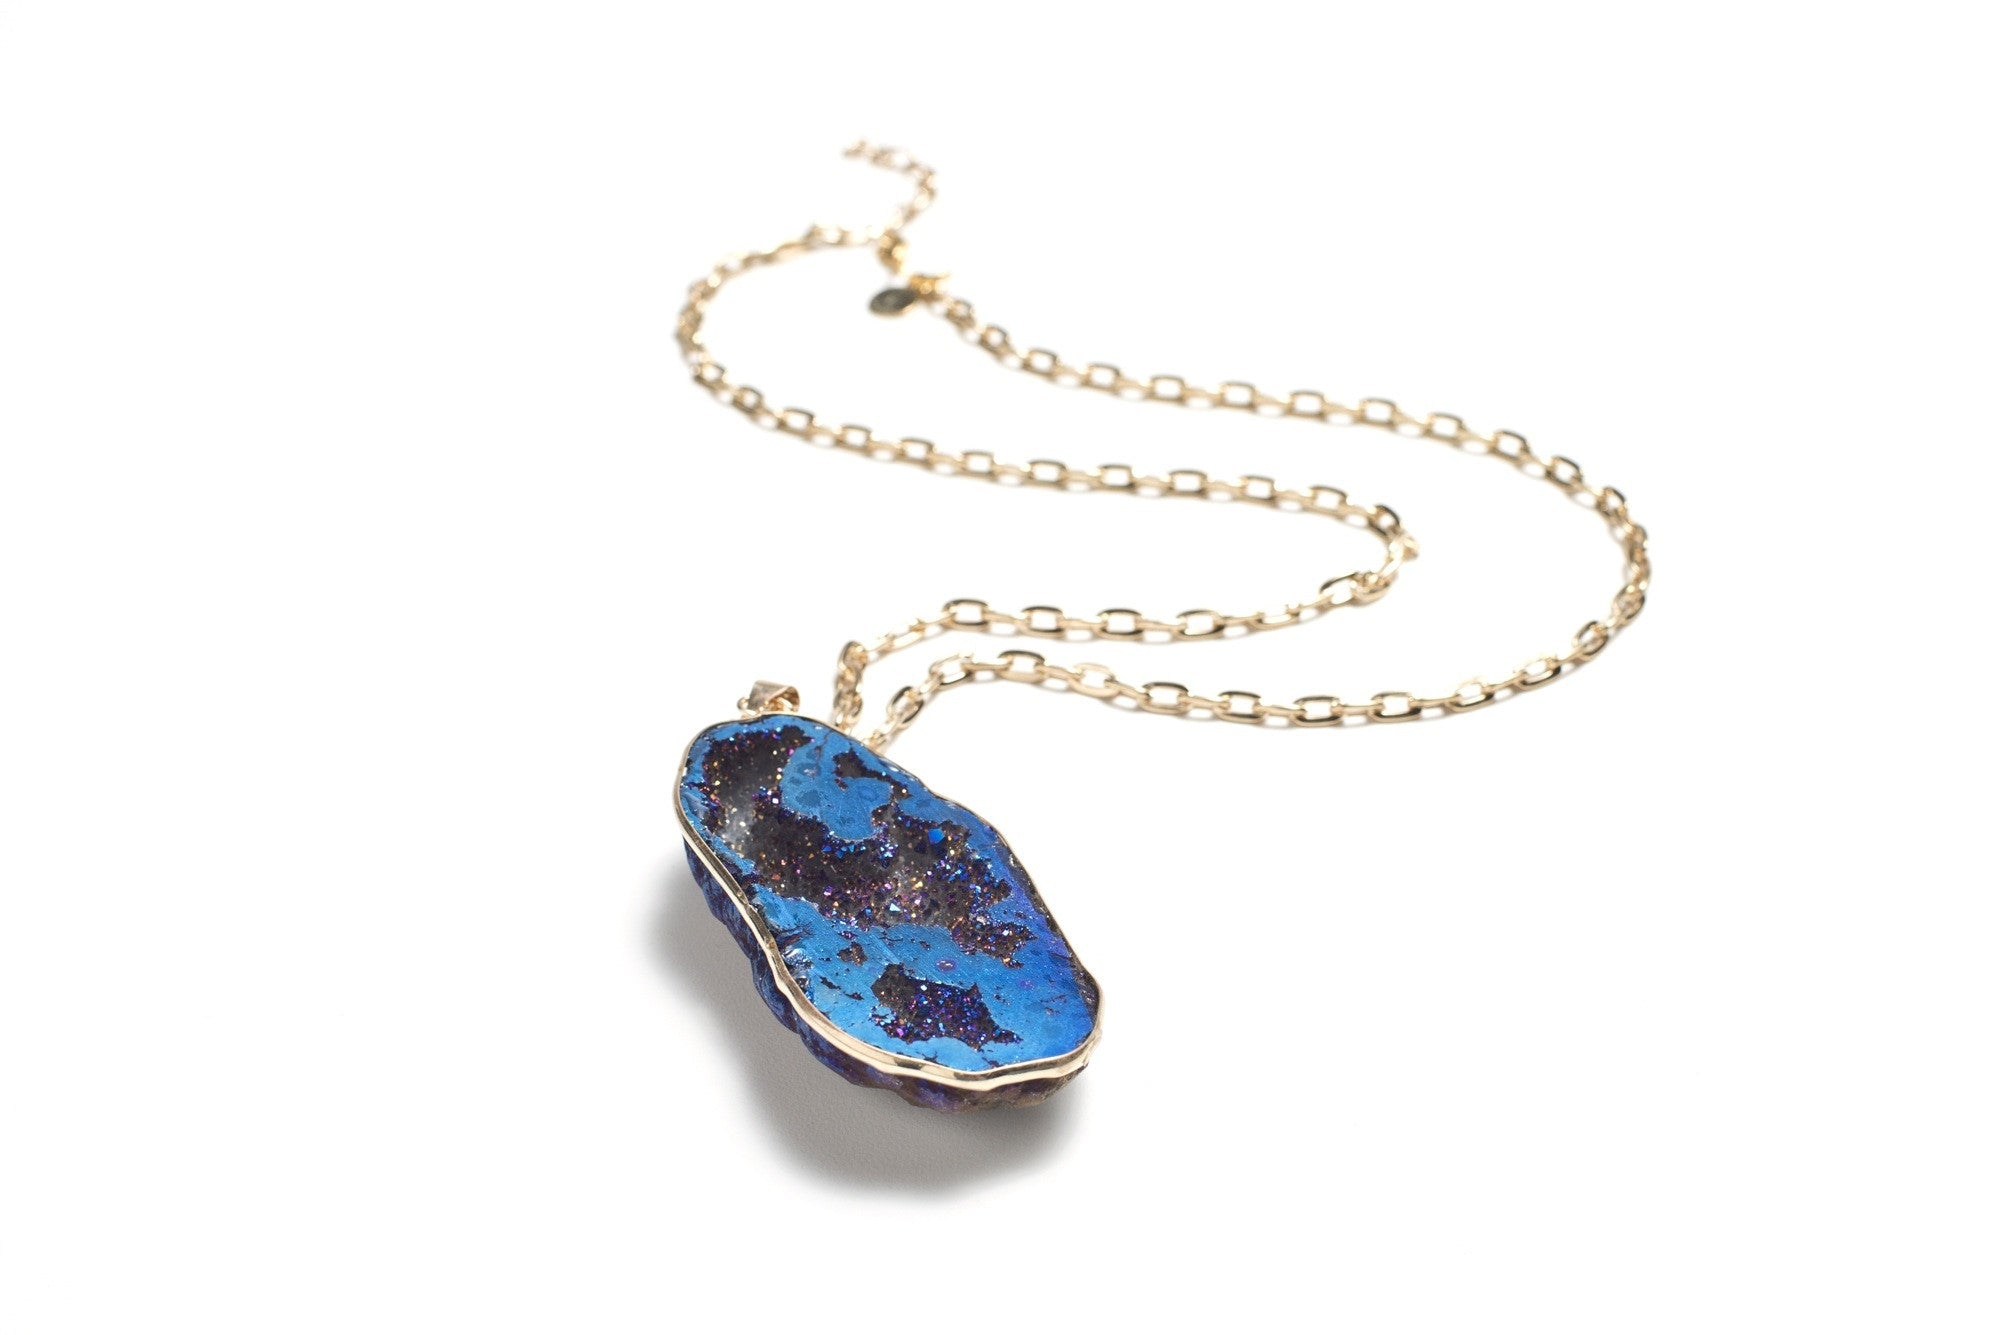 Blue Geode Necklace